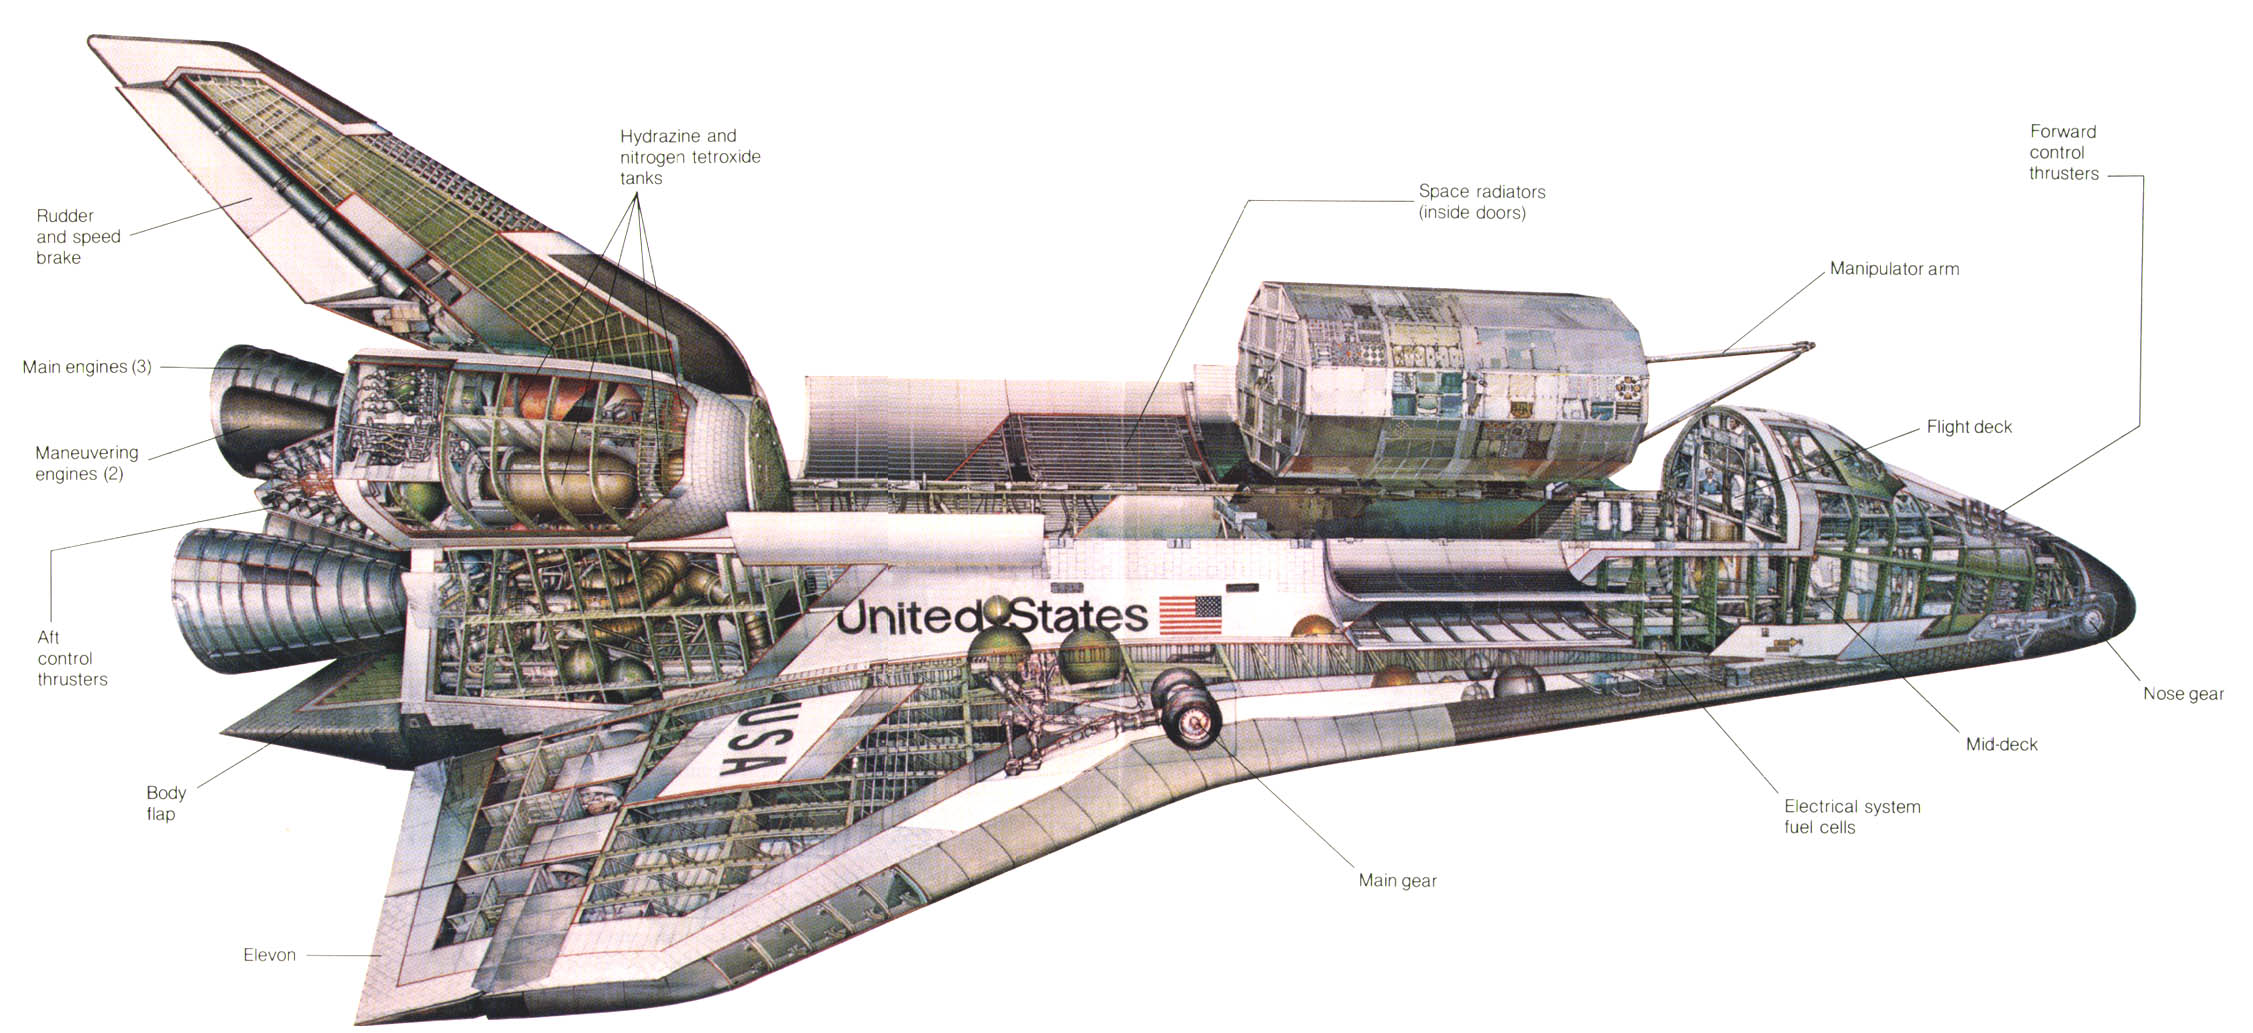 http://www.nasa.gov/images/content/108423main_shuttle_cutaway.jpg